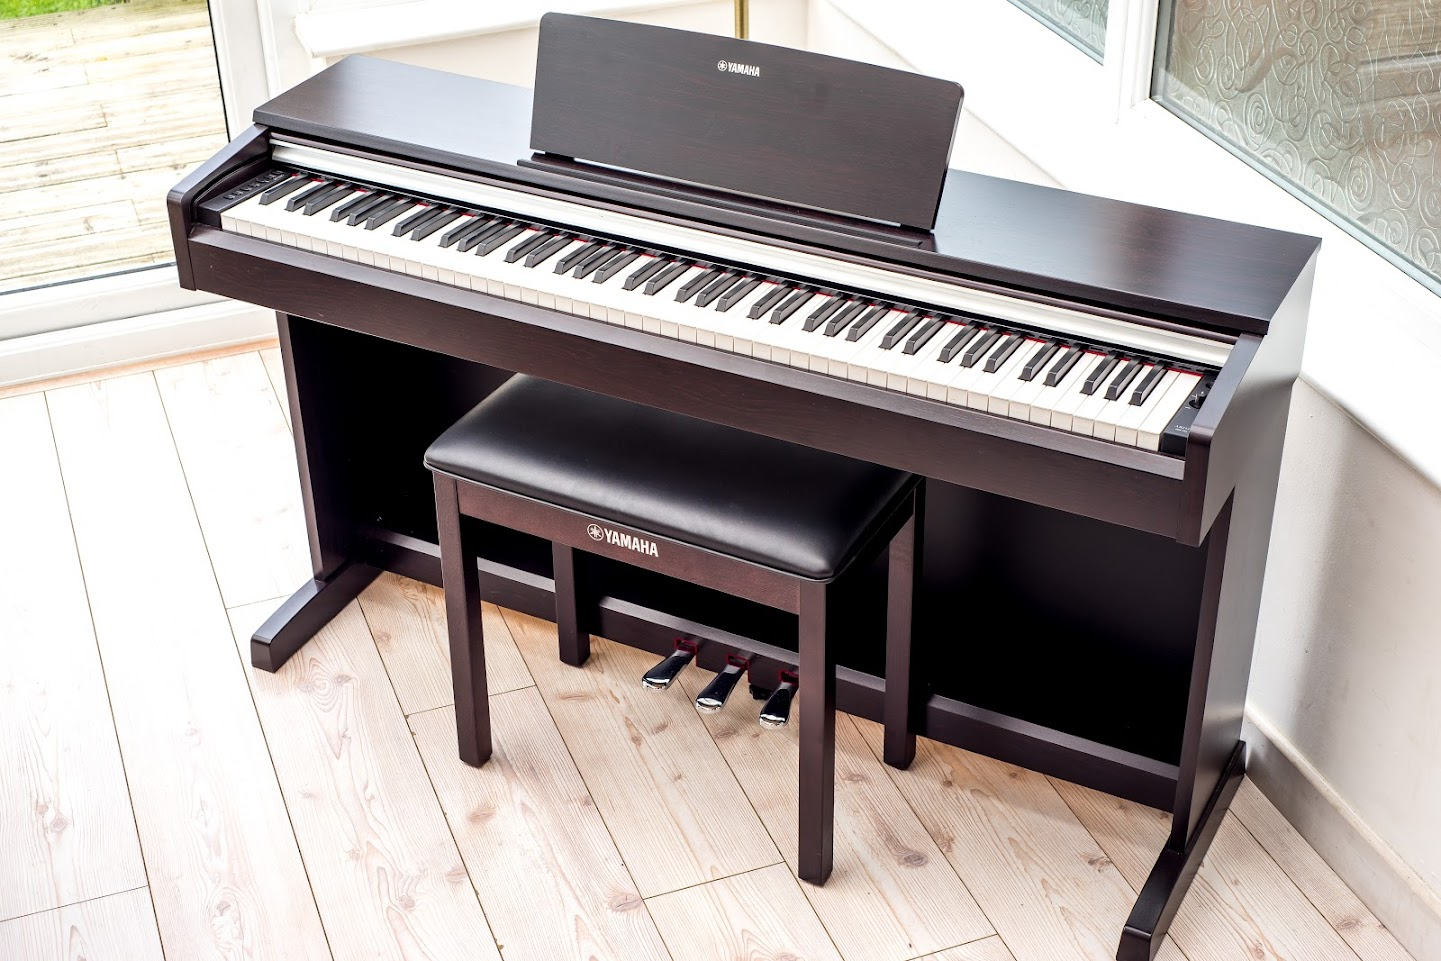 yamaha arius ydp 142 full size digital piano 88 key weighted keyboard stool ebay. Black Bedroom Furniture Sets. Home Design Ideas